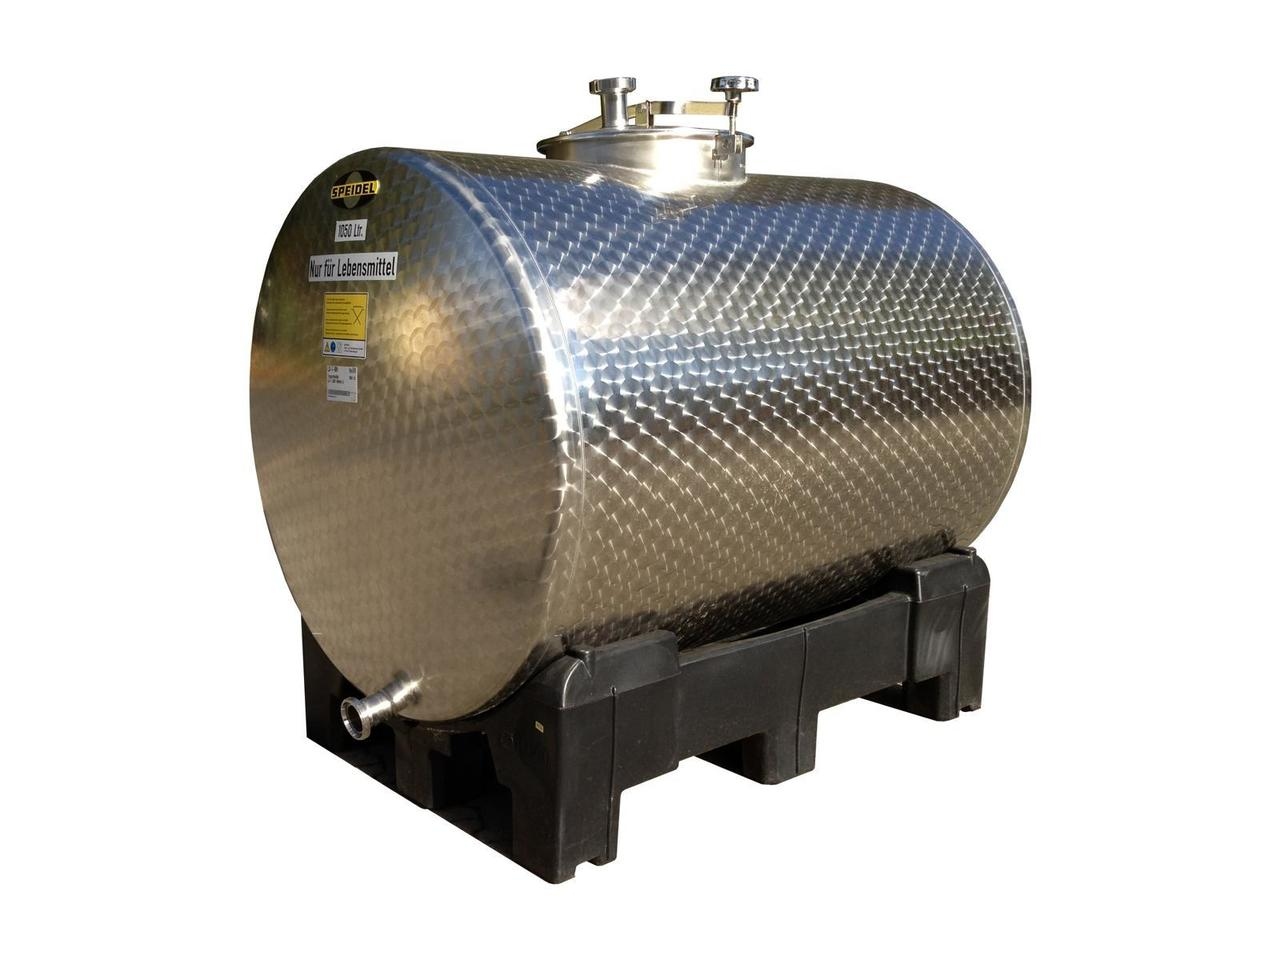 Stainless steel transportation tank, Speidel LD-T